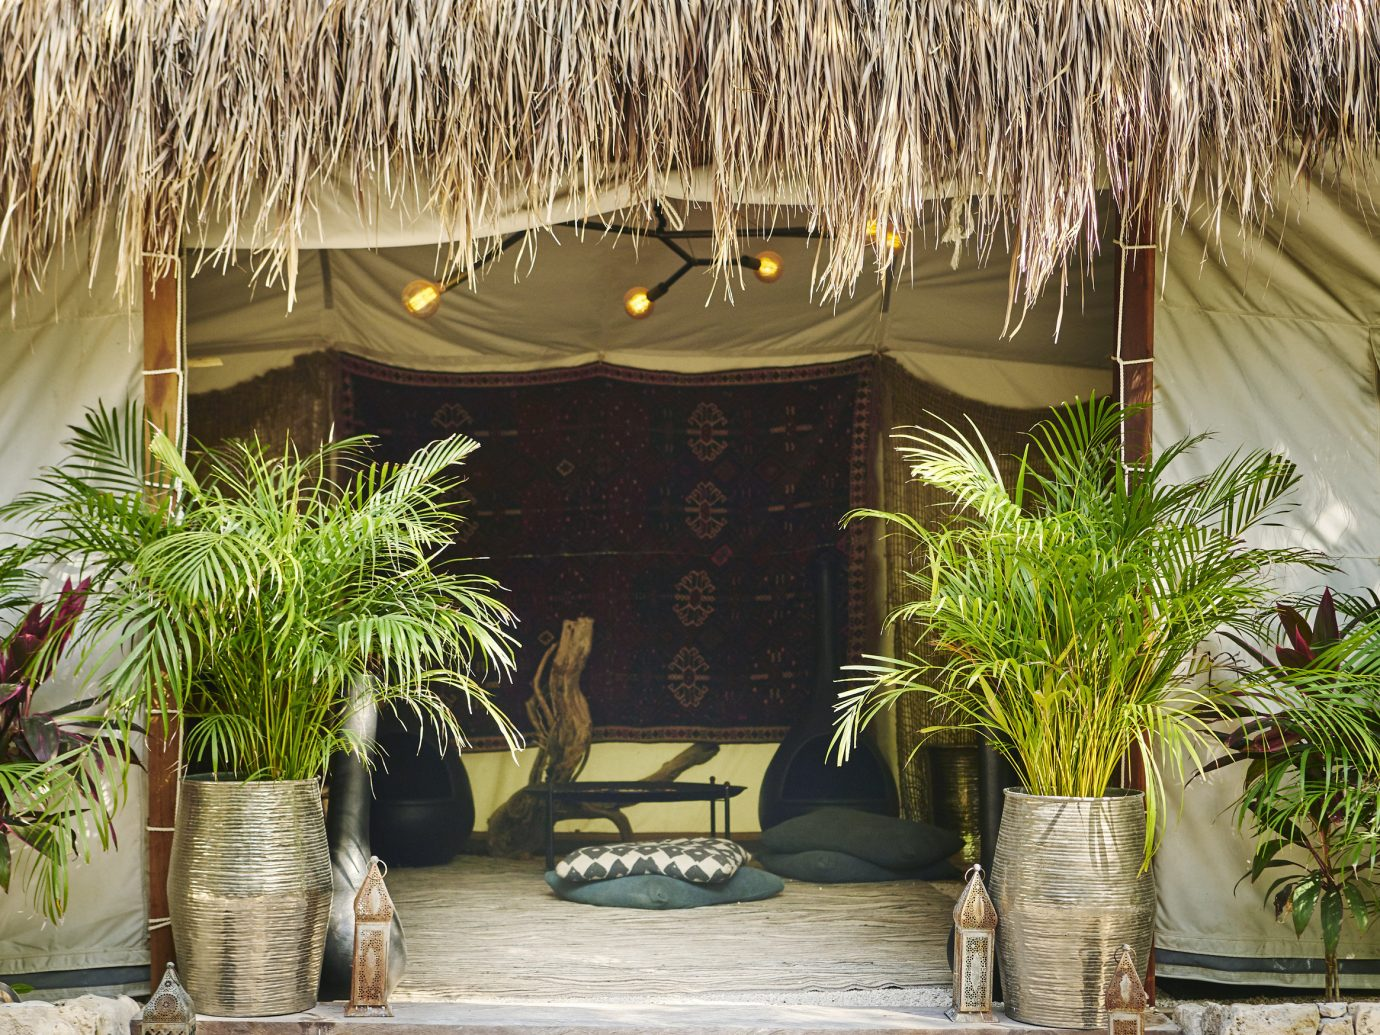 Boutique Hotels Hotels Mexico Tulum tree outdoor plant arecales palm tree outdoor structure home Resort house table window hacienda gazebo roof